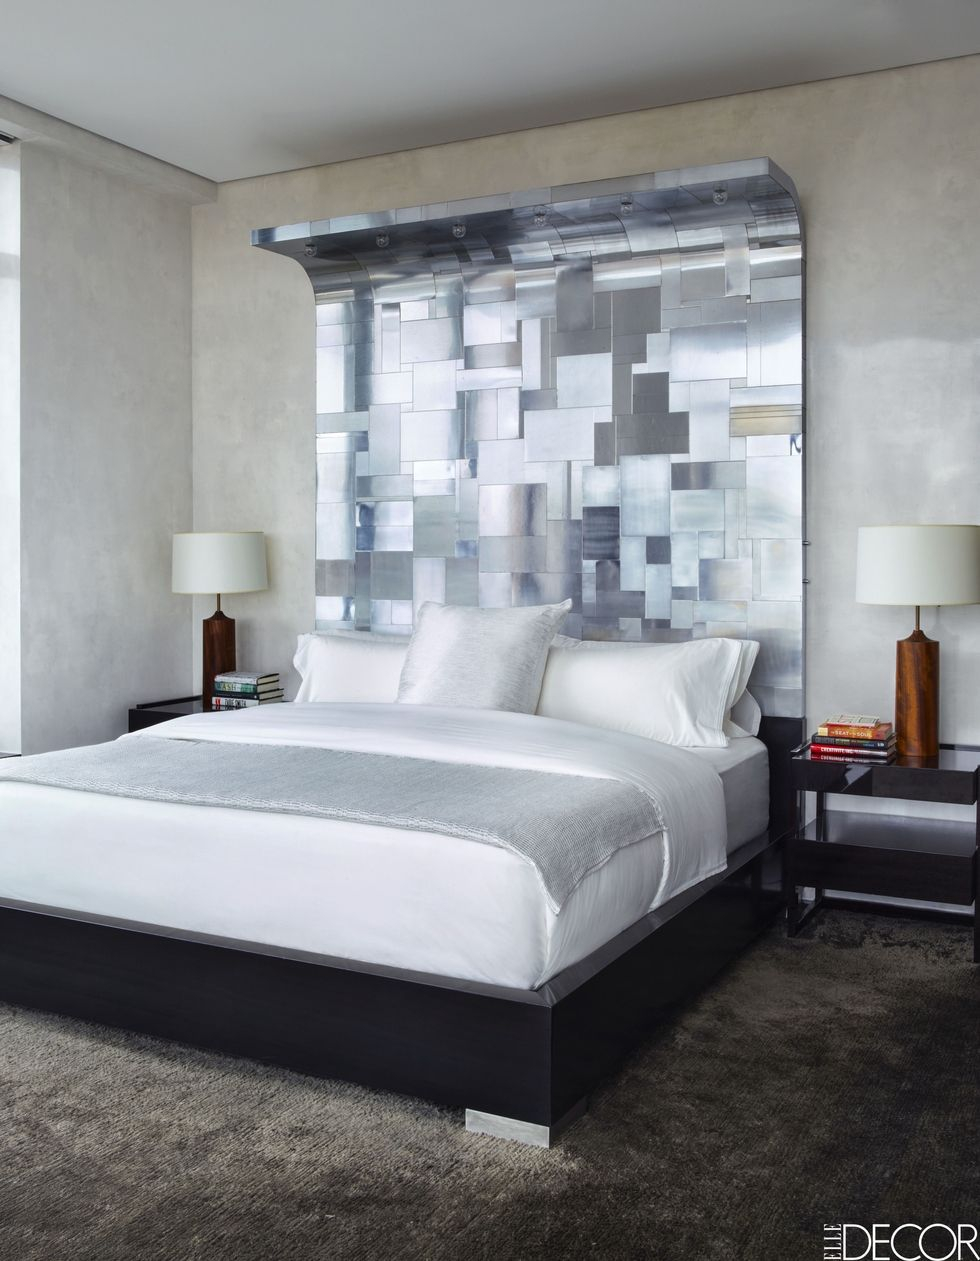 25 Inspiring Modern Bedroom Design Ideas with regard to 10 Some of the Coolest Ideas How to Build Images Of Modern Bedrooms